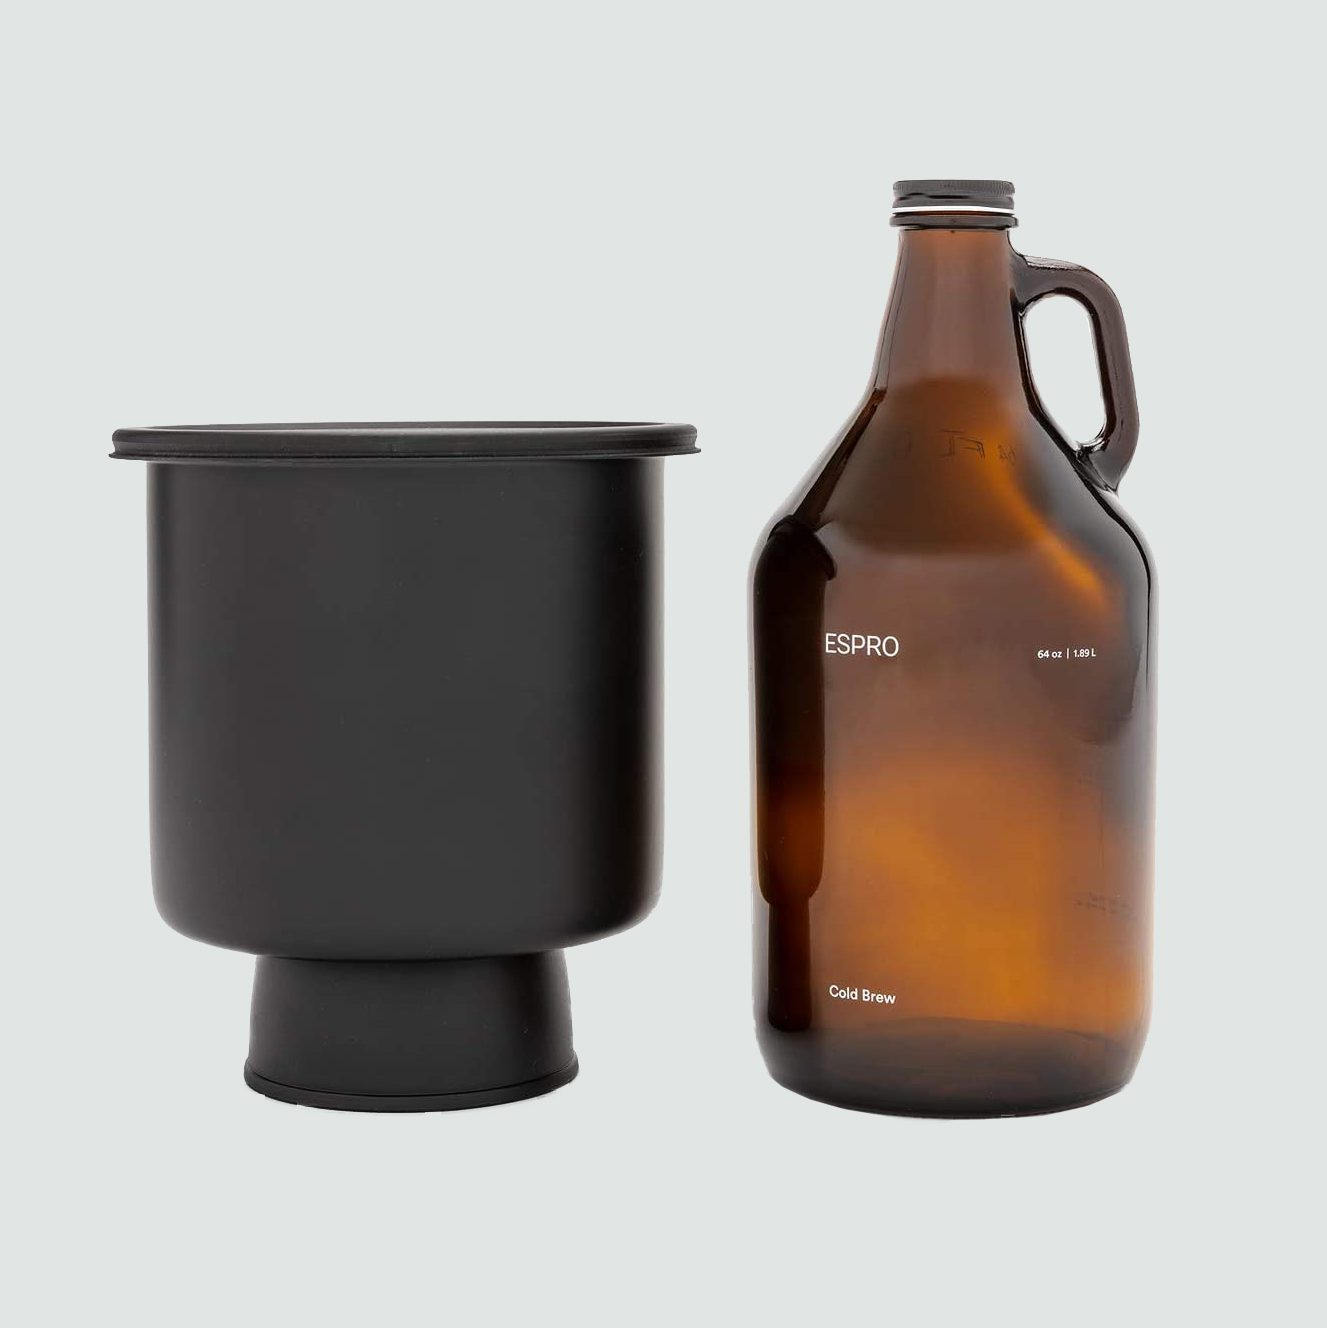 Espro Cold Brew Coffee Kit